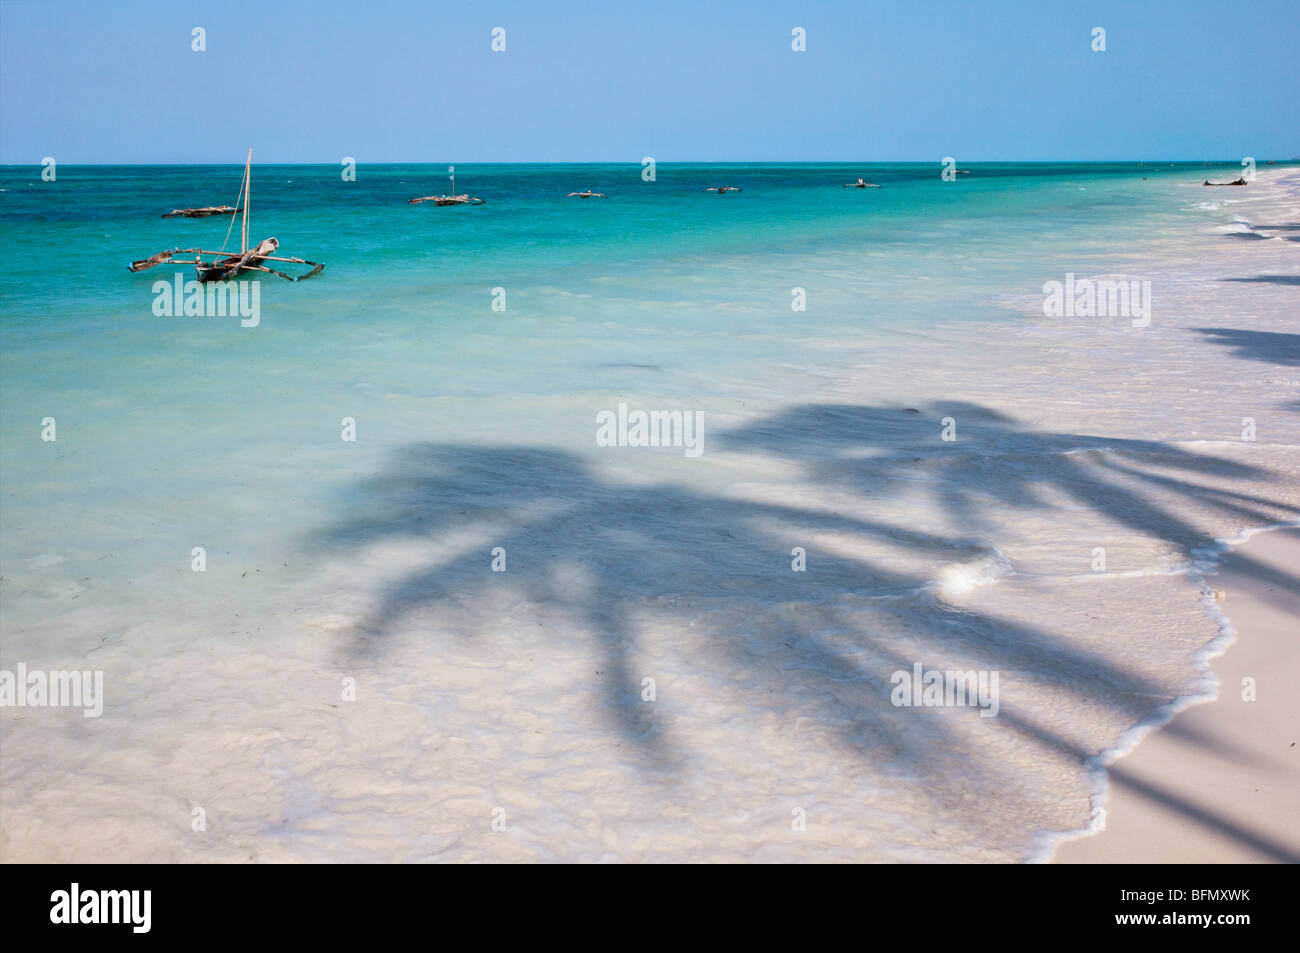 The coconut palm-lined beach at Jambiani has one of the finest beaches in the southeast of Zanzibar Island. - Stock Image